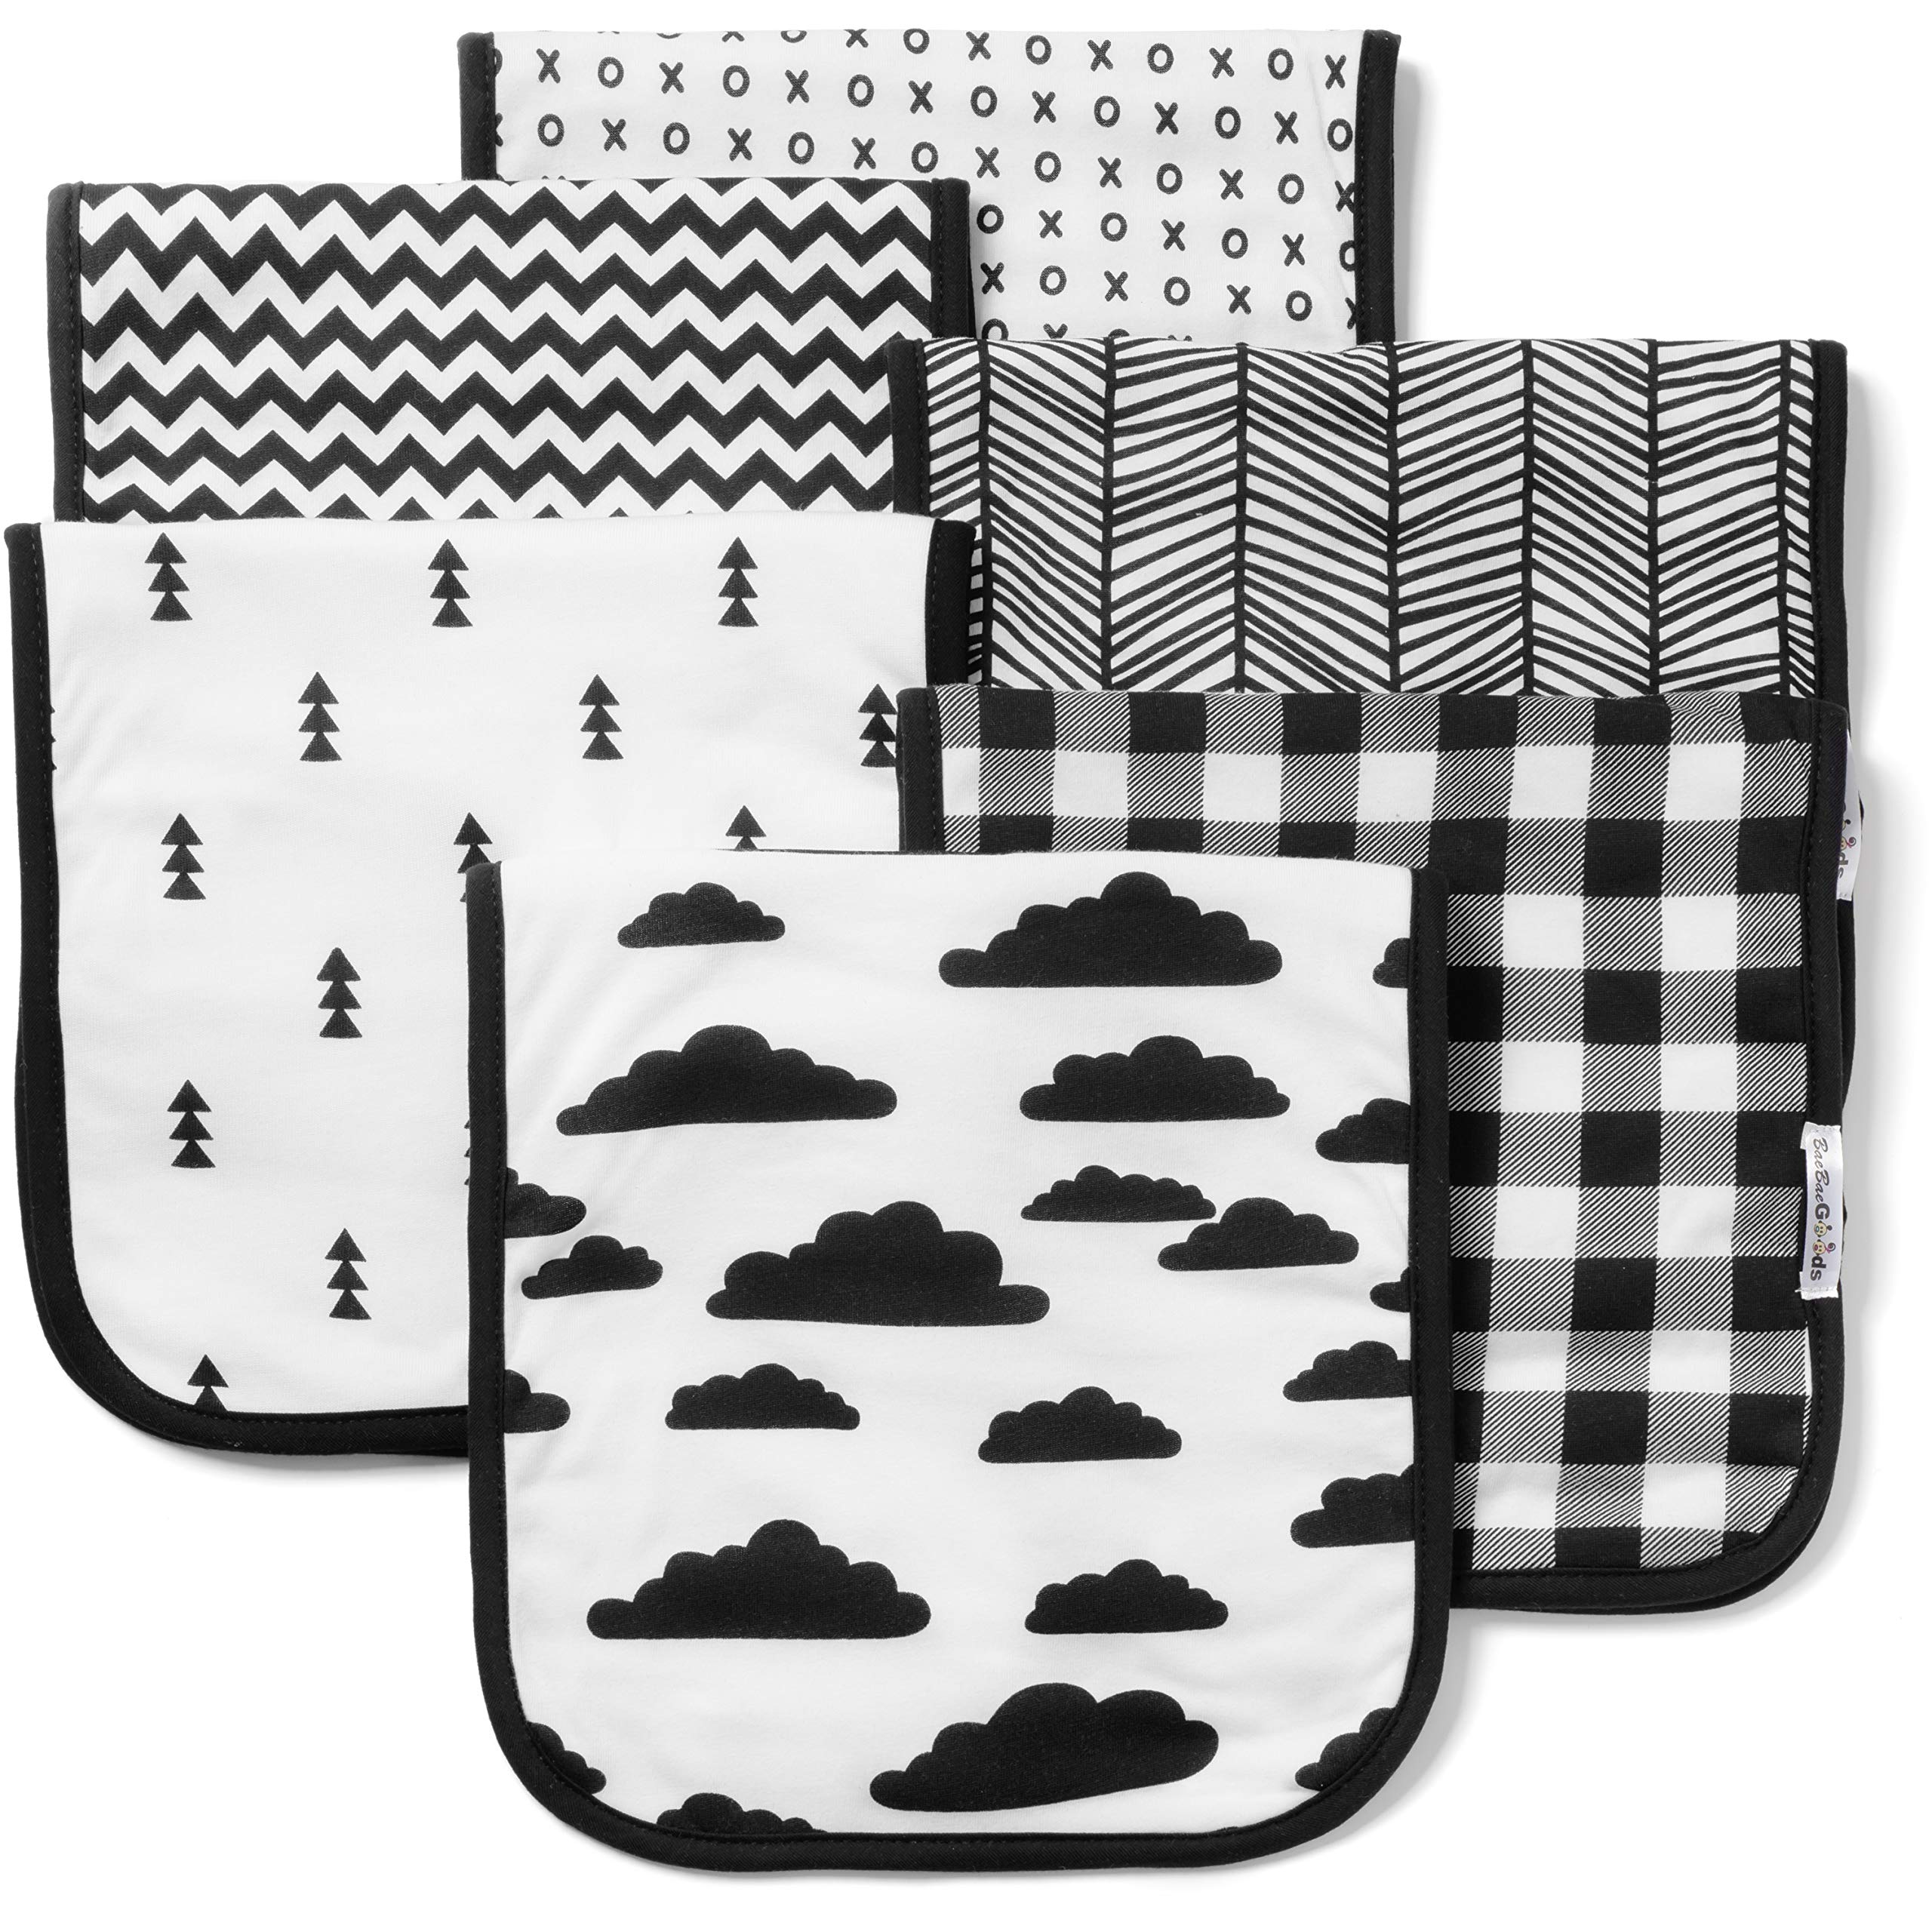 Baby Burp Cloths Set (6 Pack), Super Soft Cotton, Large 21''x10'', Thick, Soft and Absorbent Towels, Burping Rags for Newborns, Baby Shower Gift for Boys and Girls by BaeBae Goods